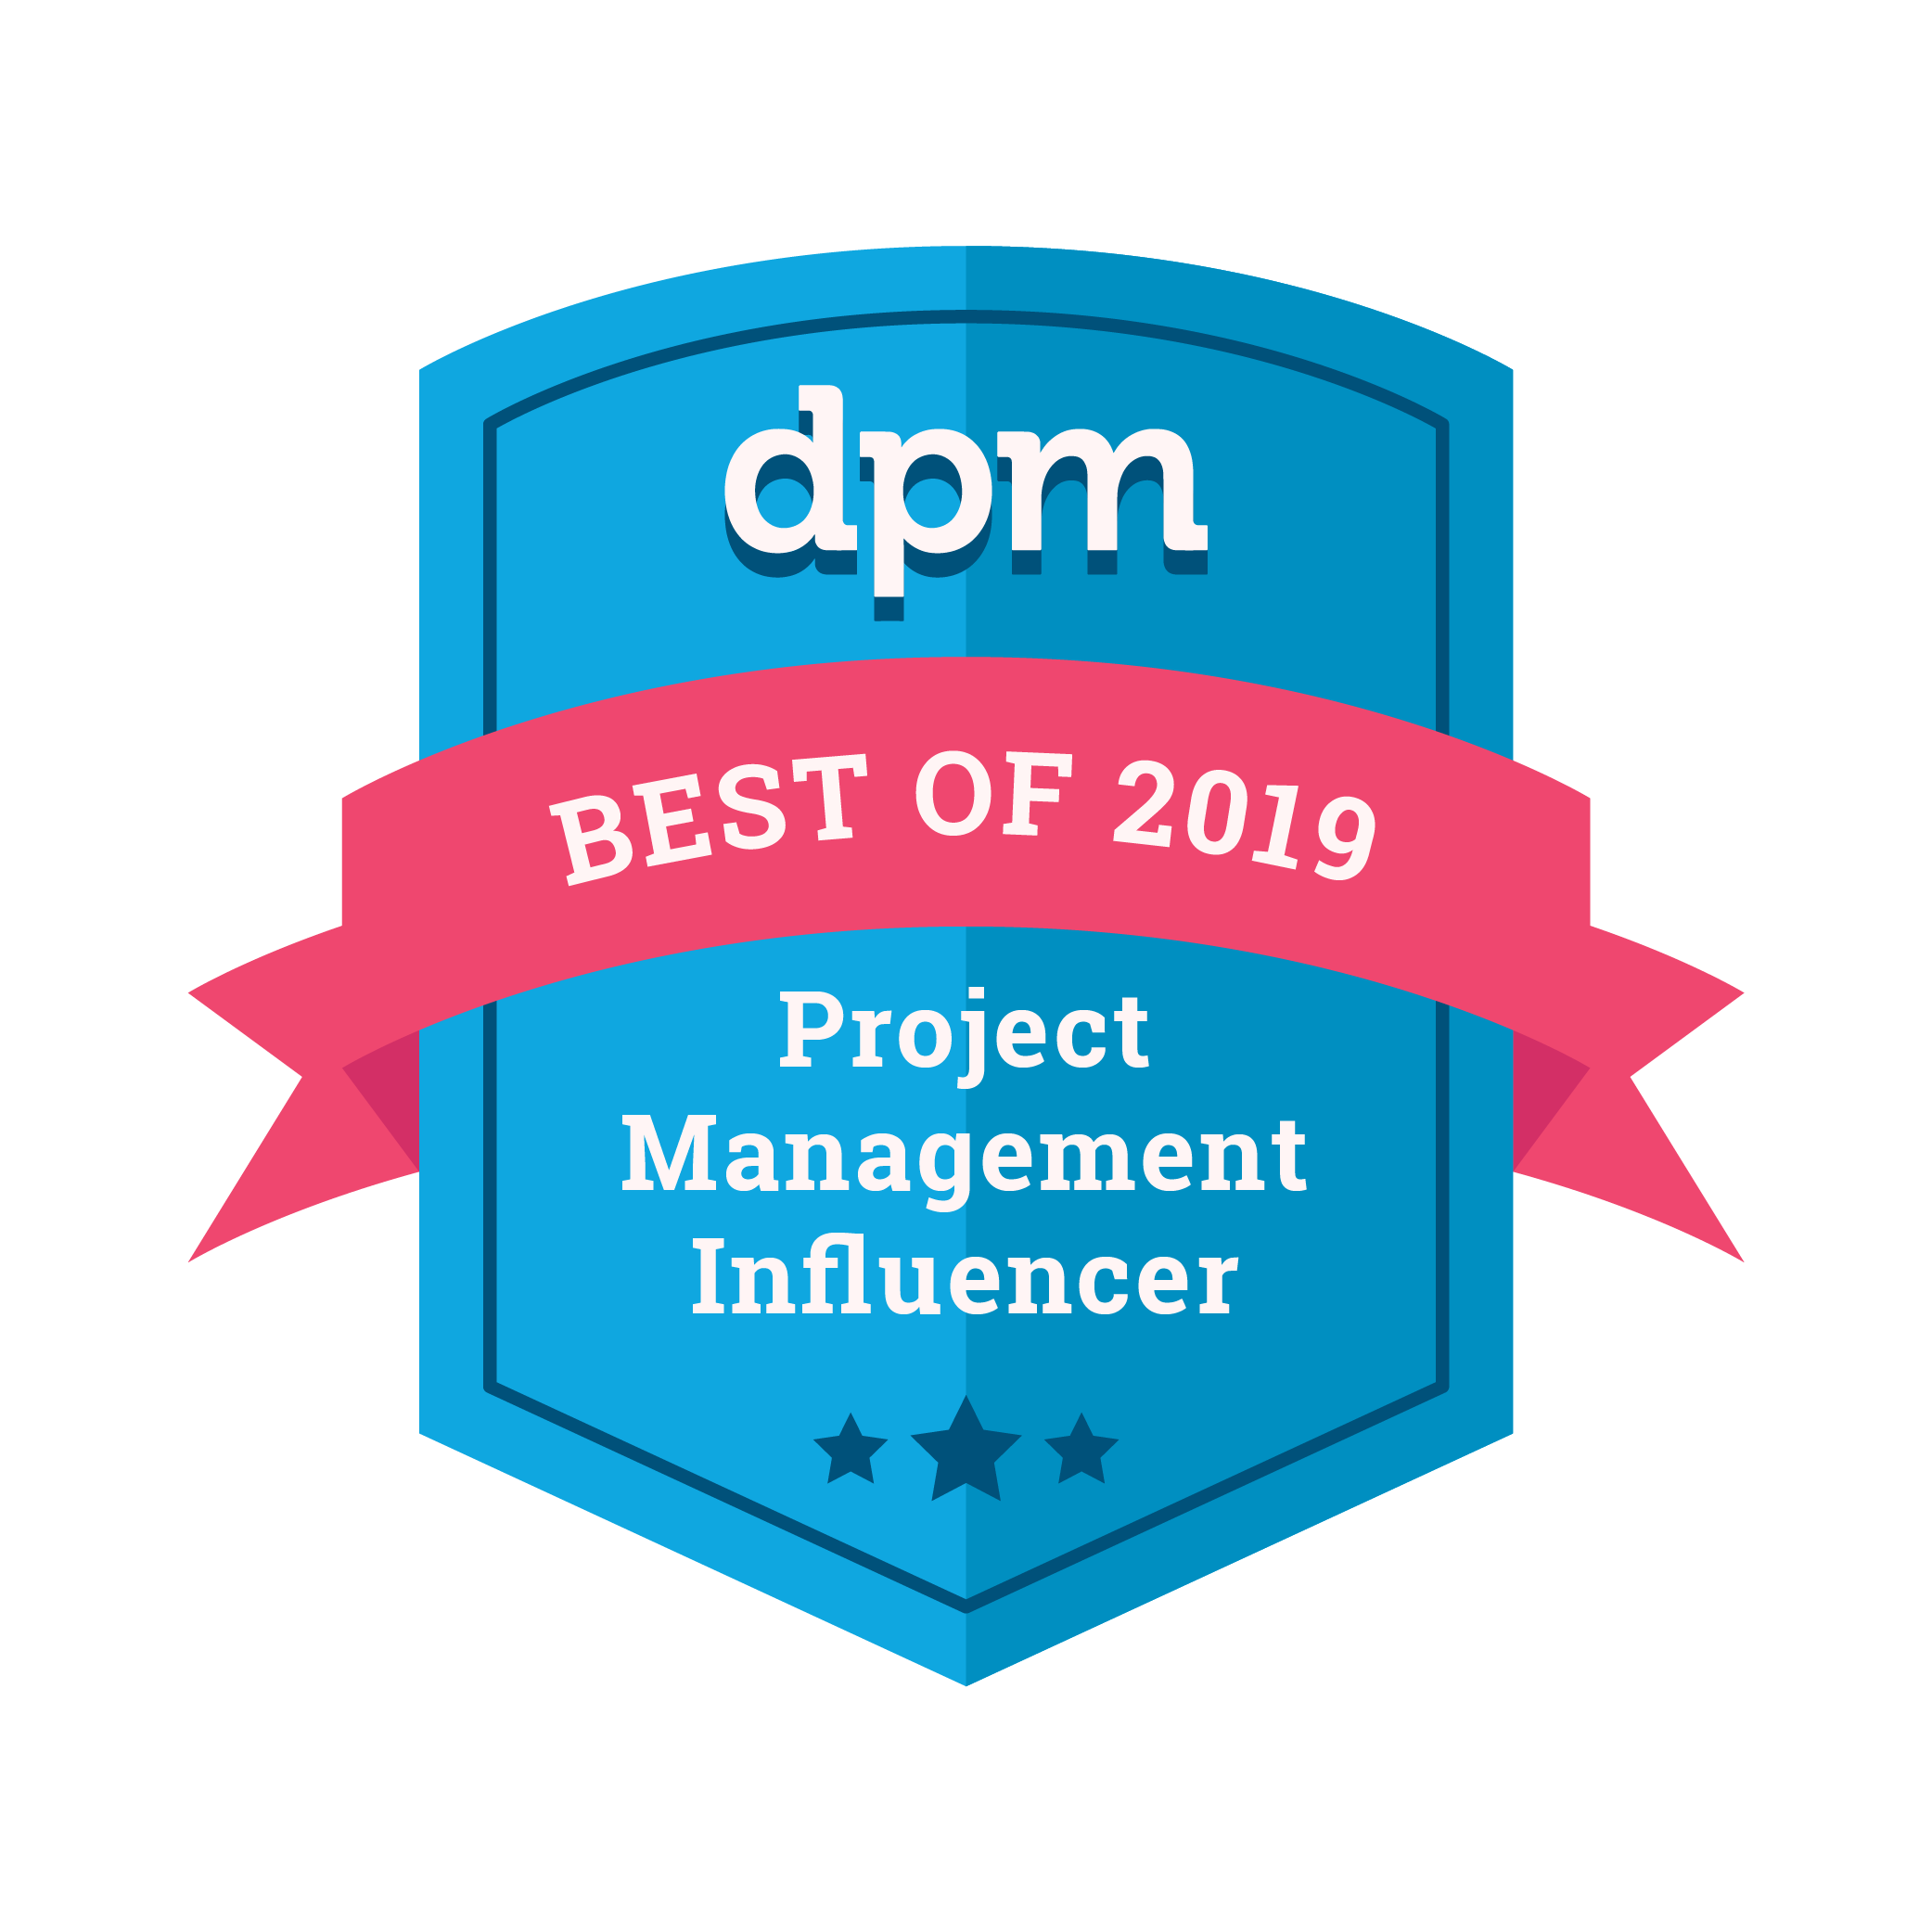 130 Top Project Management Influencers Of